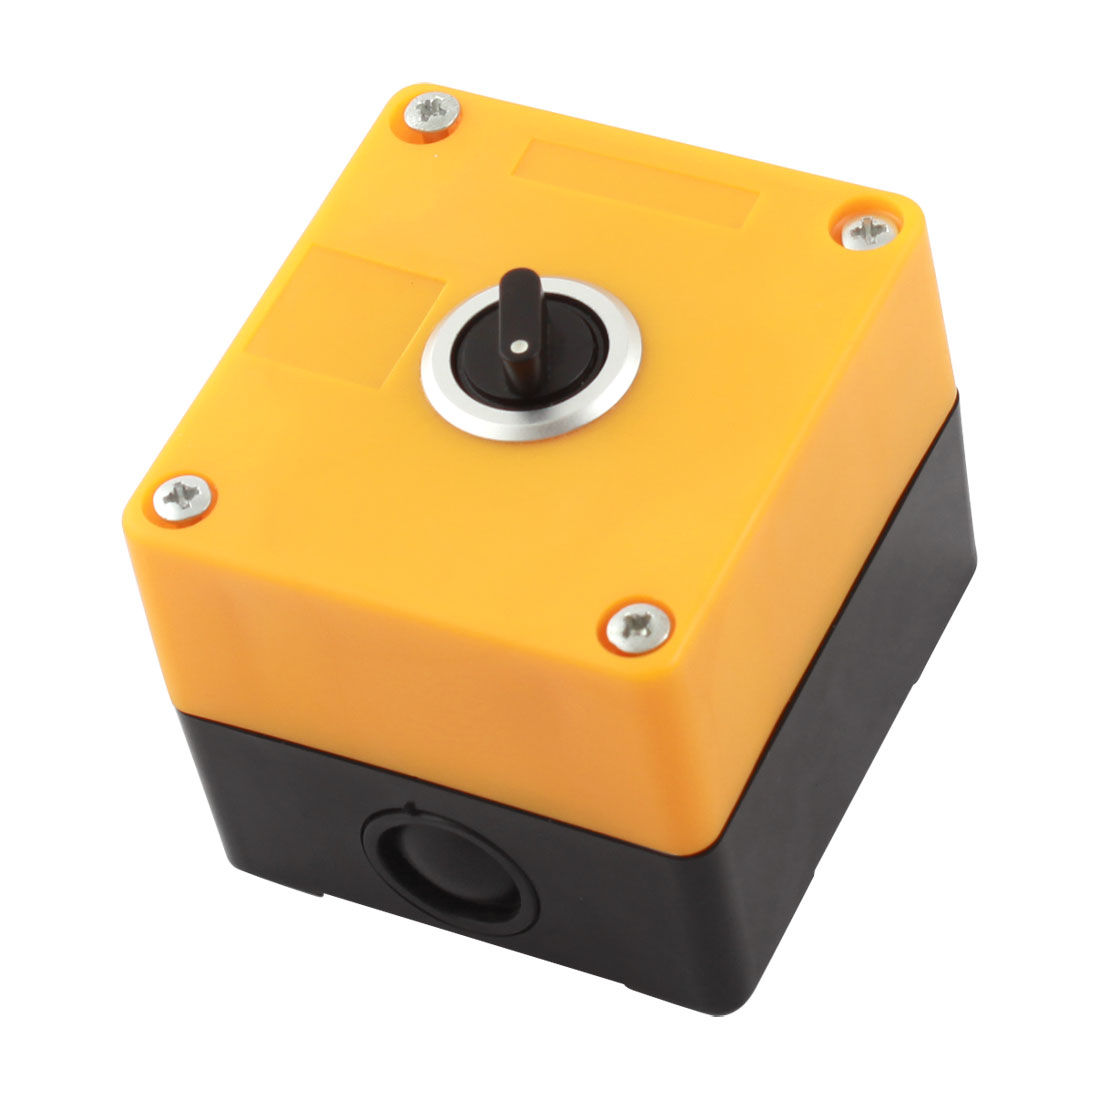 AC 220V AC250 5A Black Rotary Button 2 Position SPDT 1NO 1NC 3 Pins Soldering Self-Locking Plastic Rotary Switch Station Switch Control Box